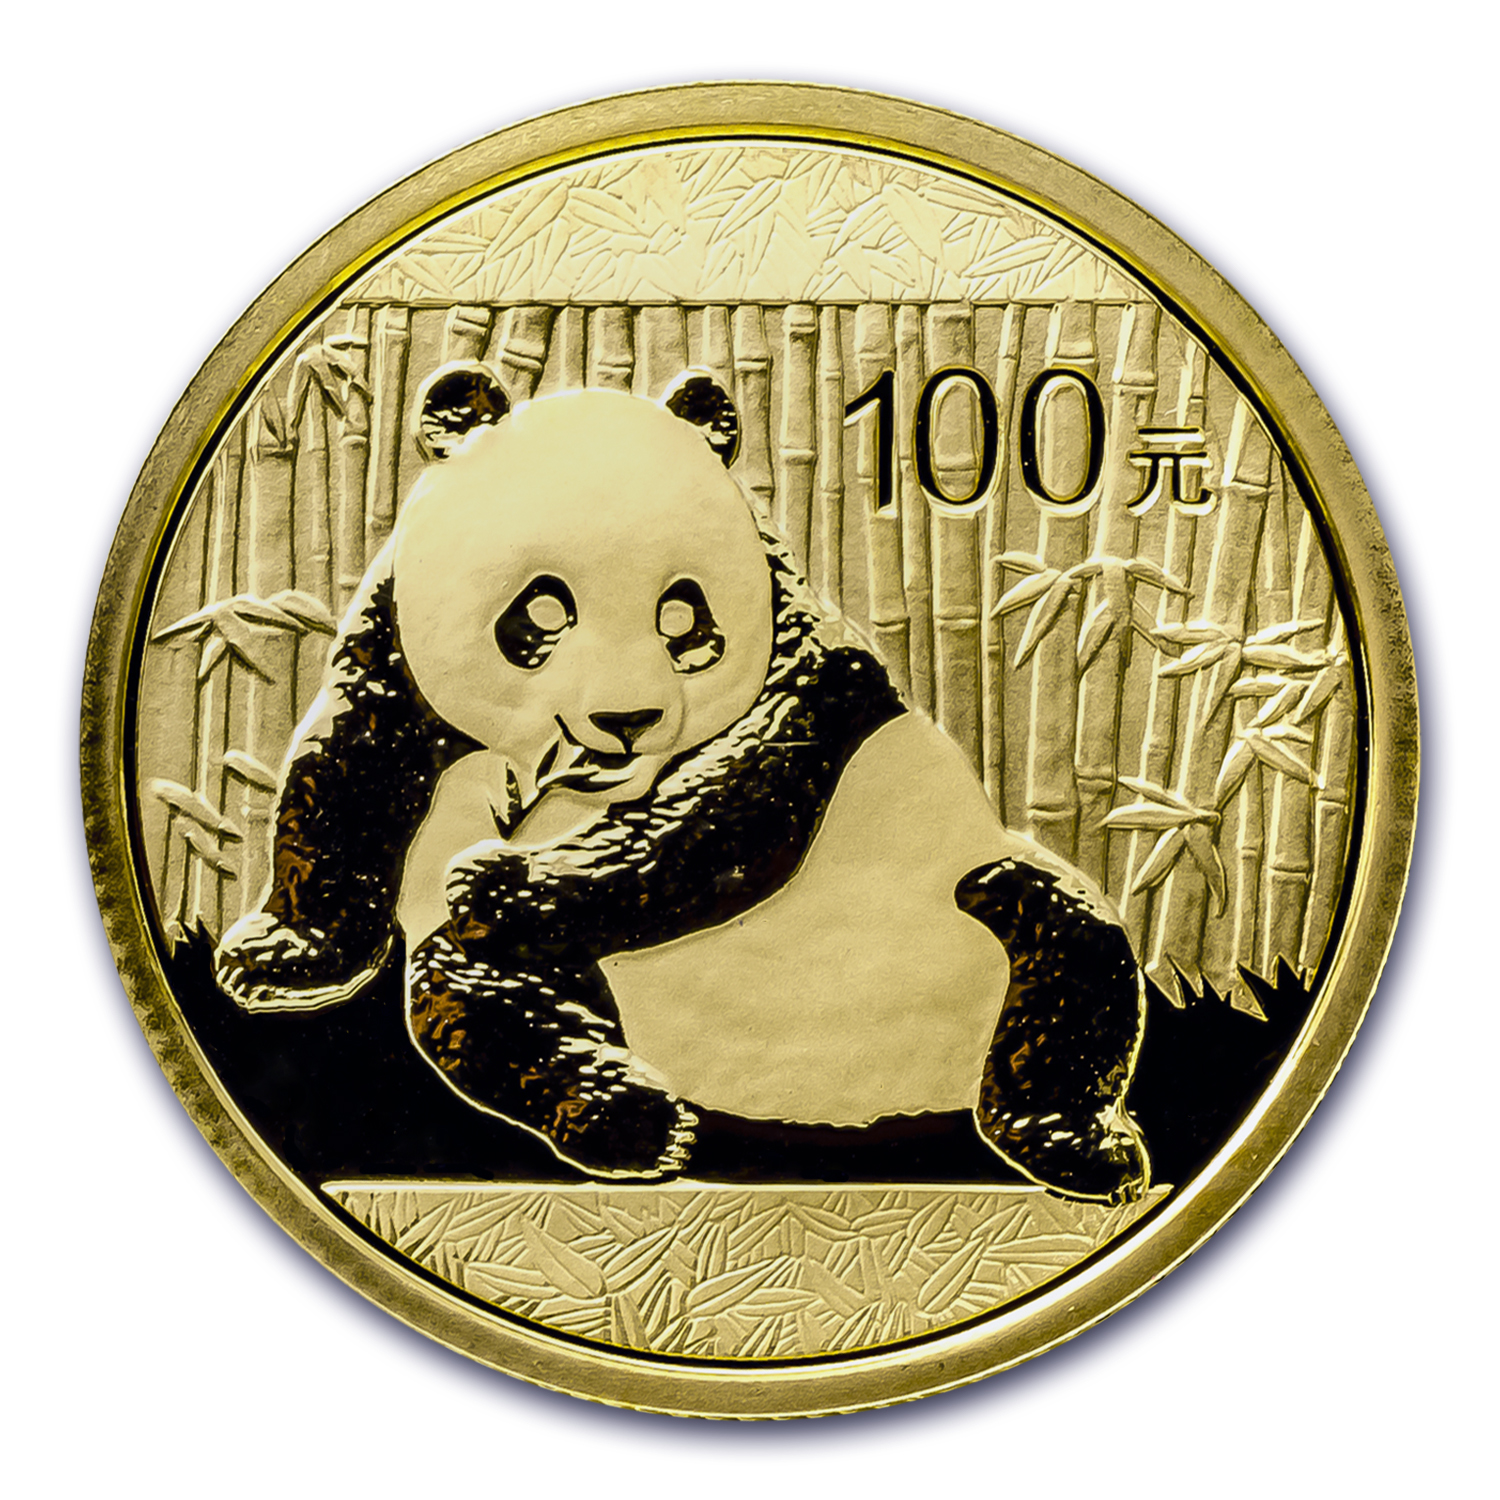 2015 China 1/4 oz Gold Panda BU (Sealed) (Dec 3rd)